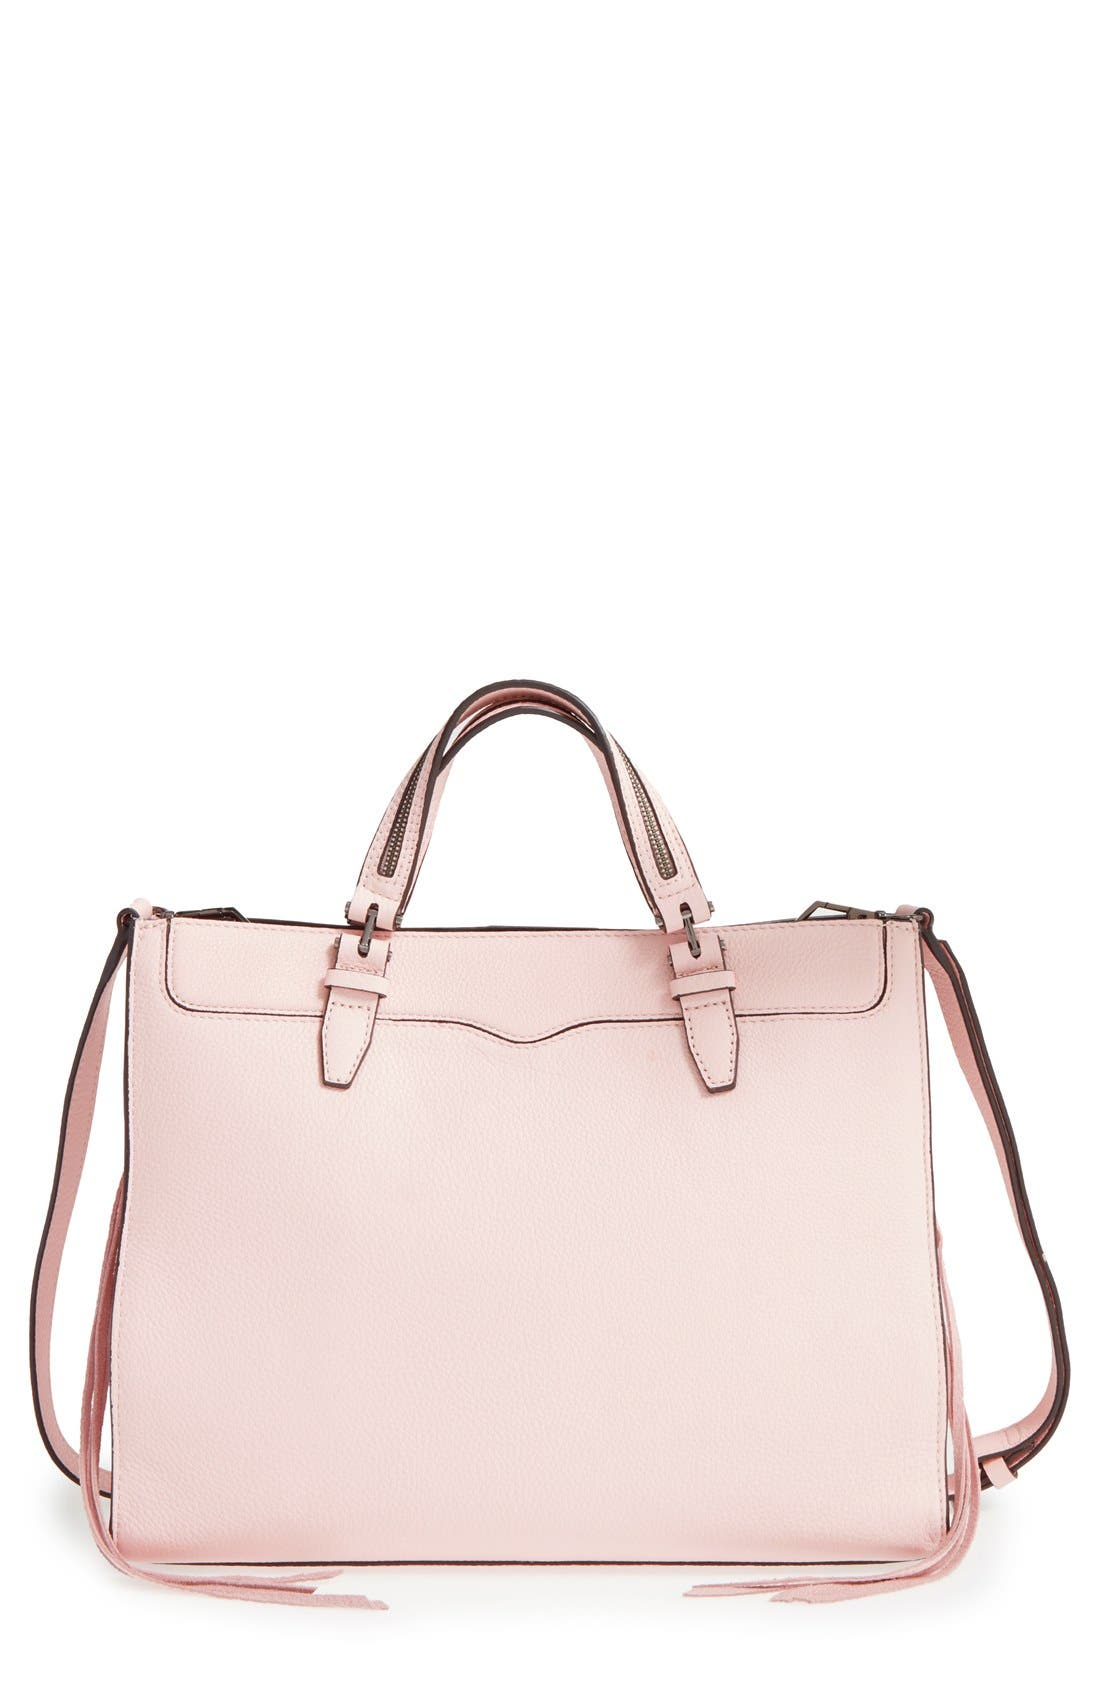 REBECCA MINKOFF,                             'Blair' Tote,                             Main thumbnail 1, color,                             650